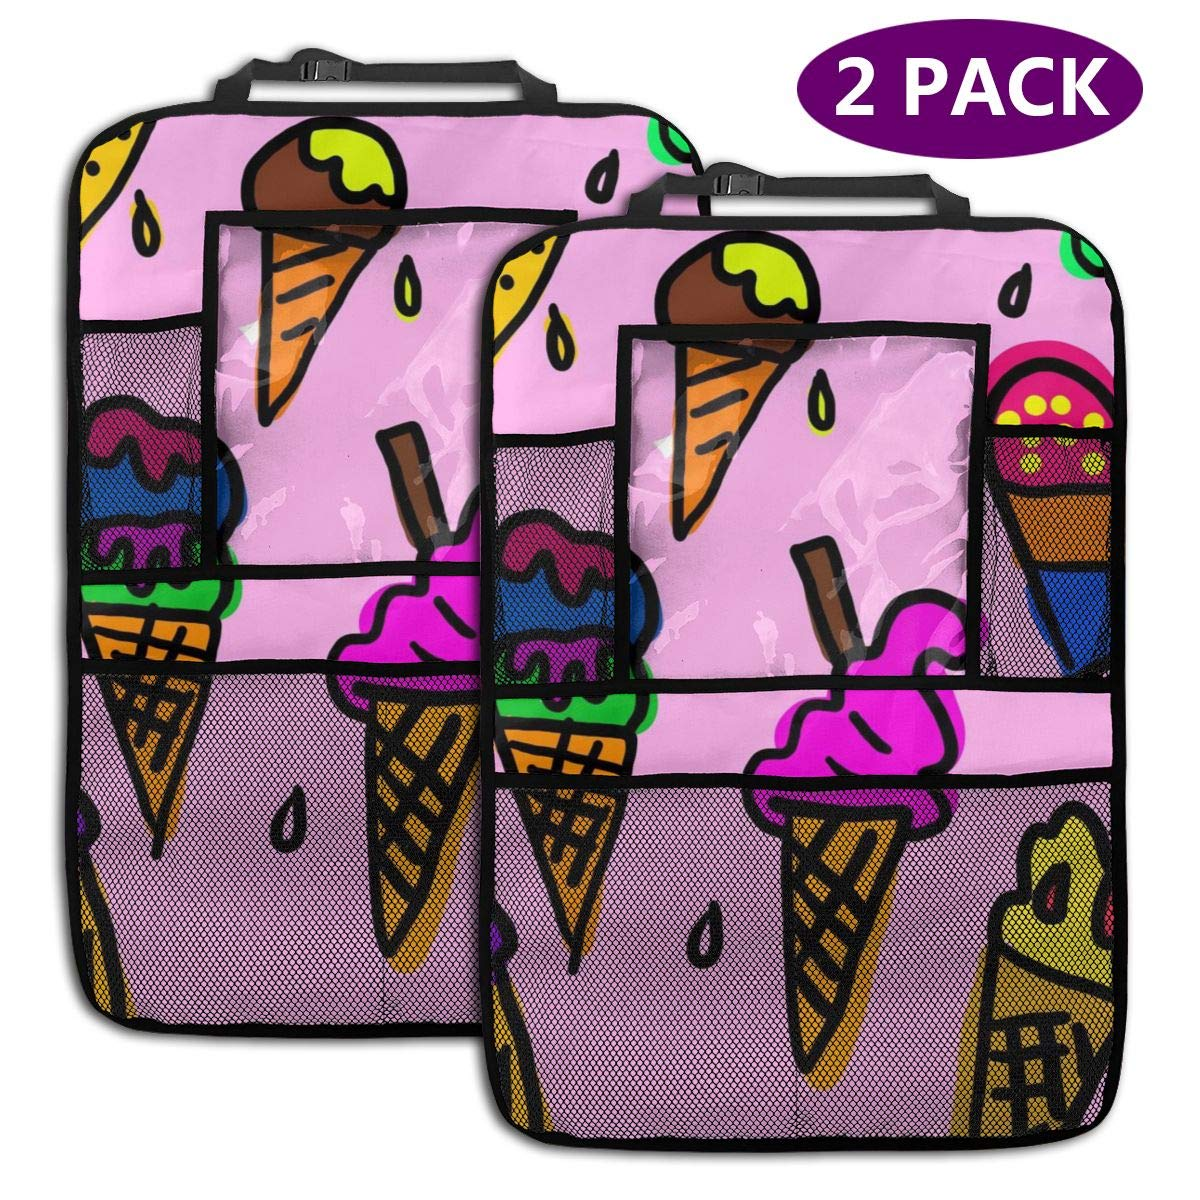 QF6FEICHAN Color Ice Cream Car Seat Back Protectors with Storage Pockets Kick Mats Accessories for Kids and Toddlers by QF6FEICHAN